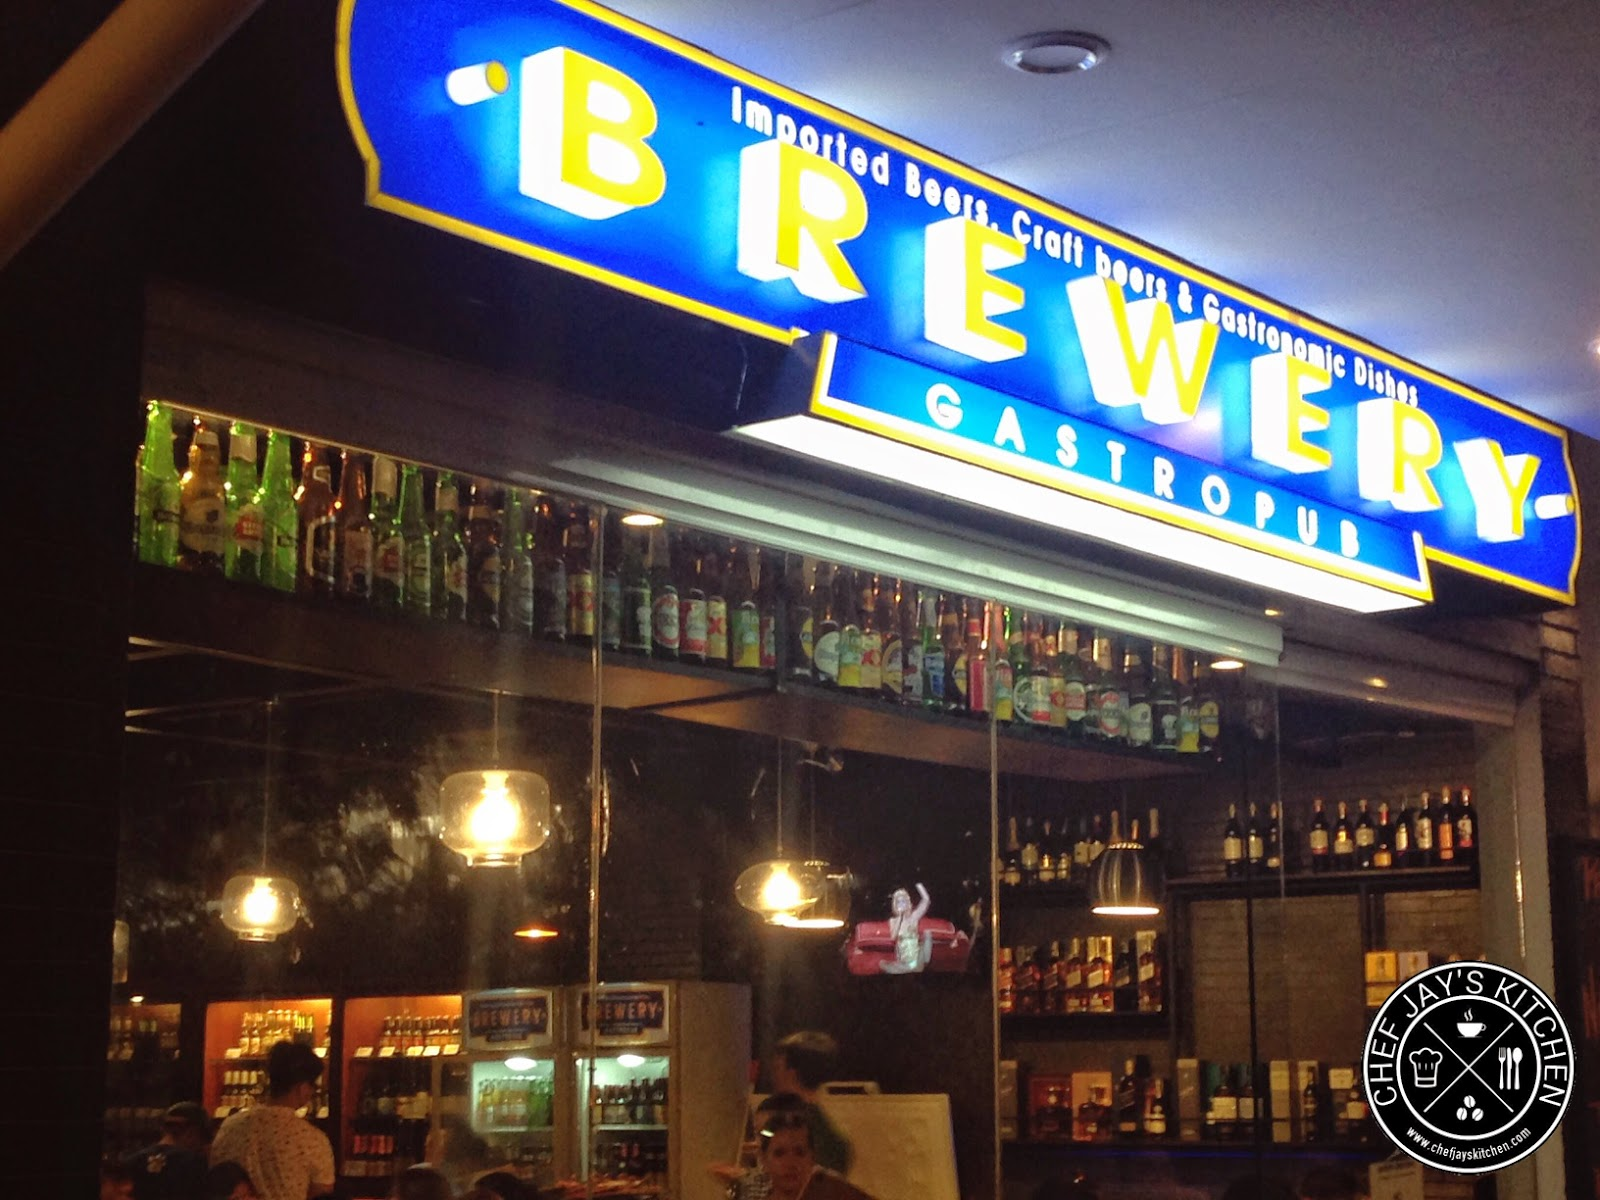 Brewery Gastropub: Serving the Best Imported Beers in Iloilo City